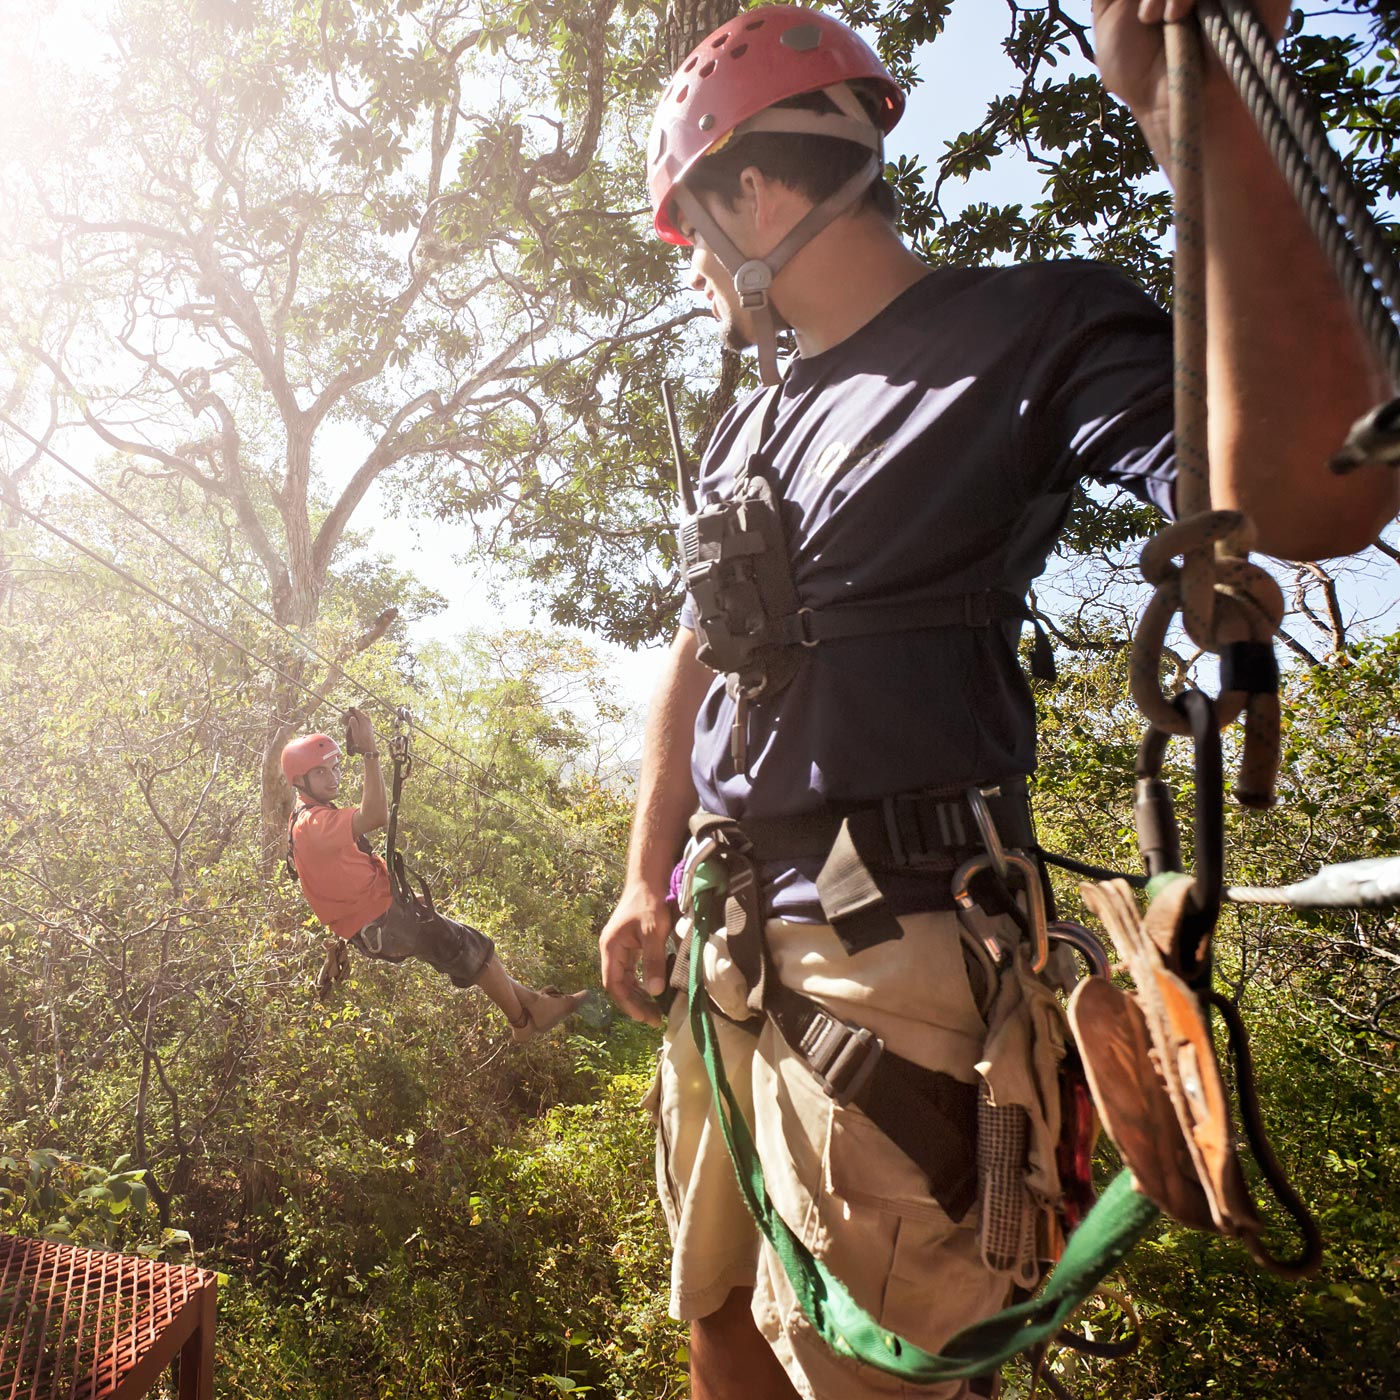 Adventure-ABP-Costa-Rica-zip-line1.jpg